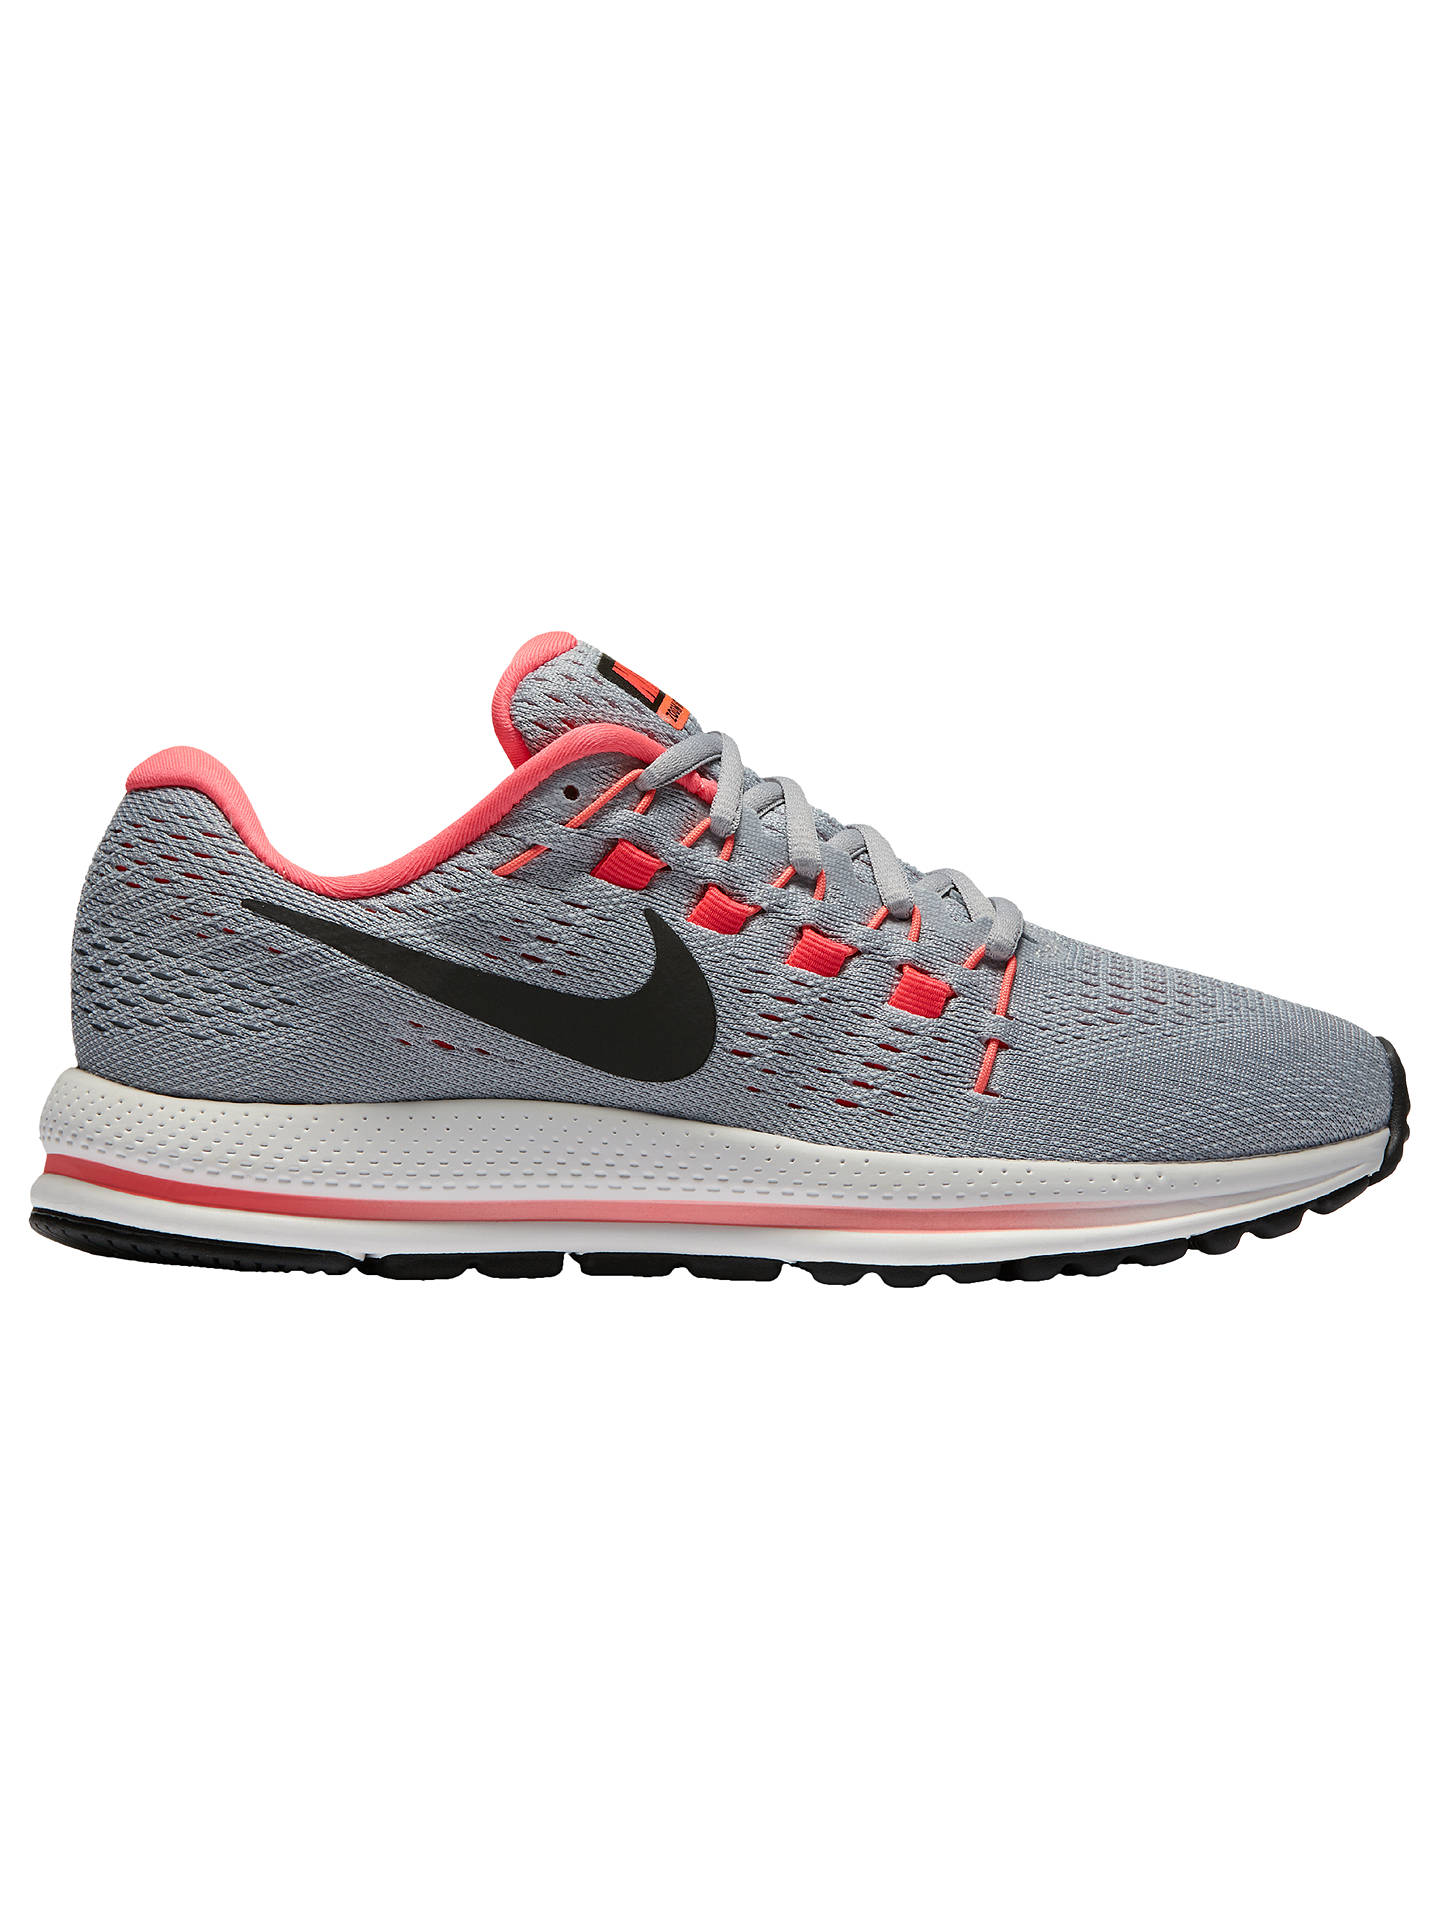 competitive price 870b1 1f90a Buy Nike Air Zoom Vomero 12 Women s Running Shoes, Black Grey Platinum,